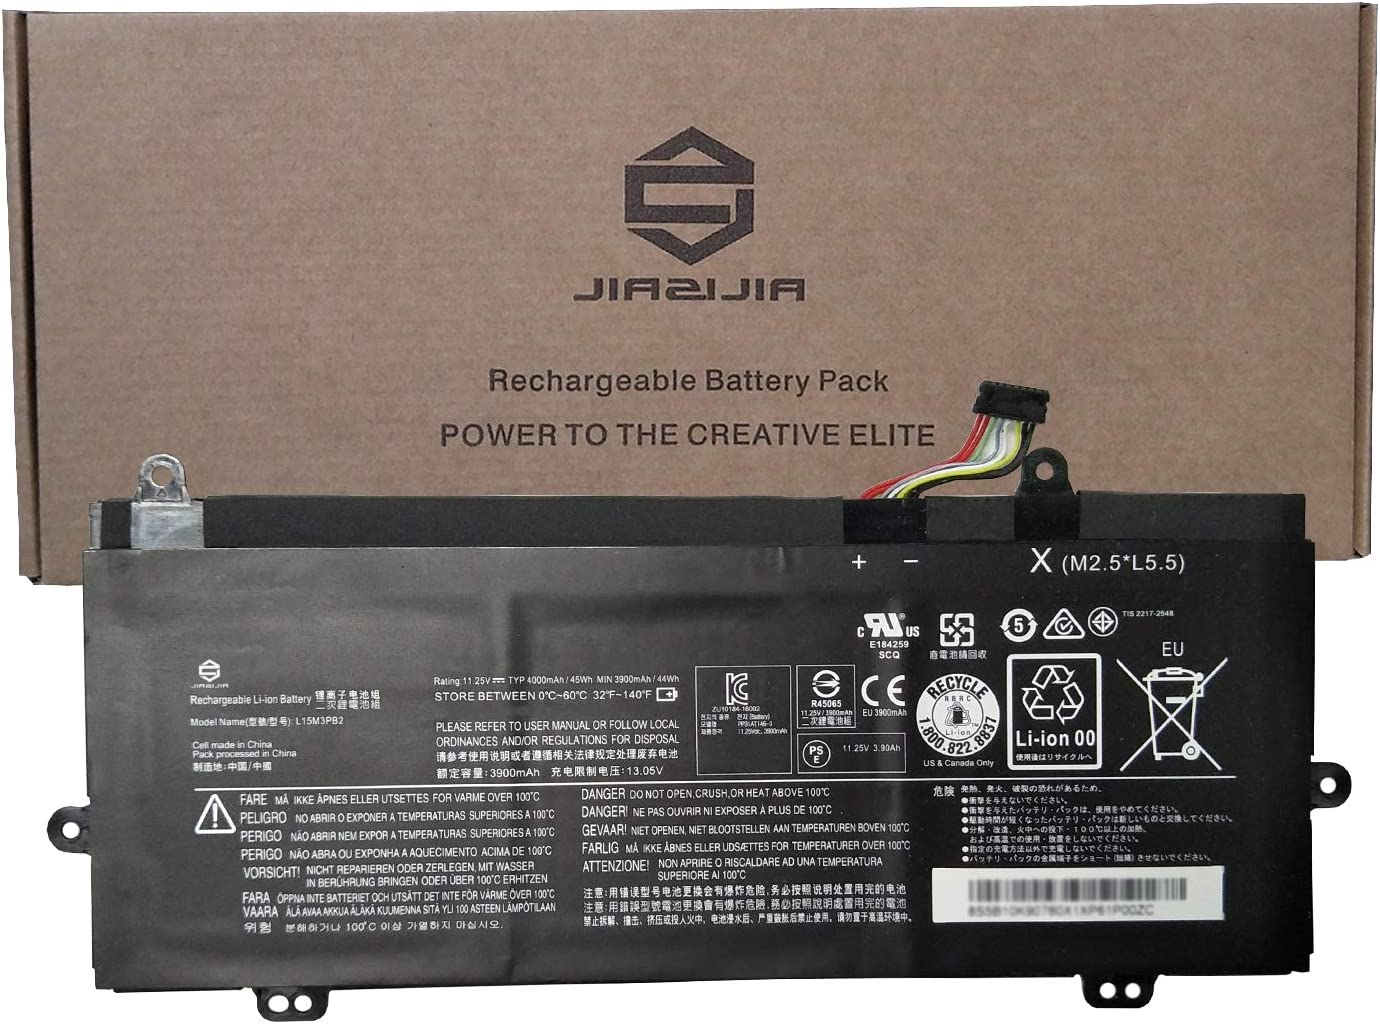 JIAZIJIA L15M3PB2 Laptop Battery Replacement for Lenovo Winbook N22 N23 100E1st Gen Series Notebook 5B10K90780 L15C3PB0 5B10K90783 Black 11.25V 45Wh 4000mAh 3-Cell